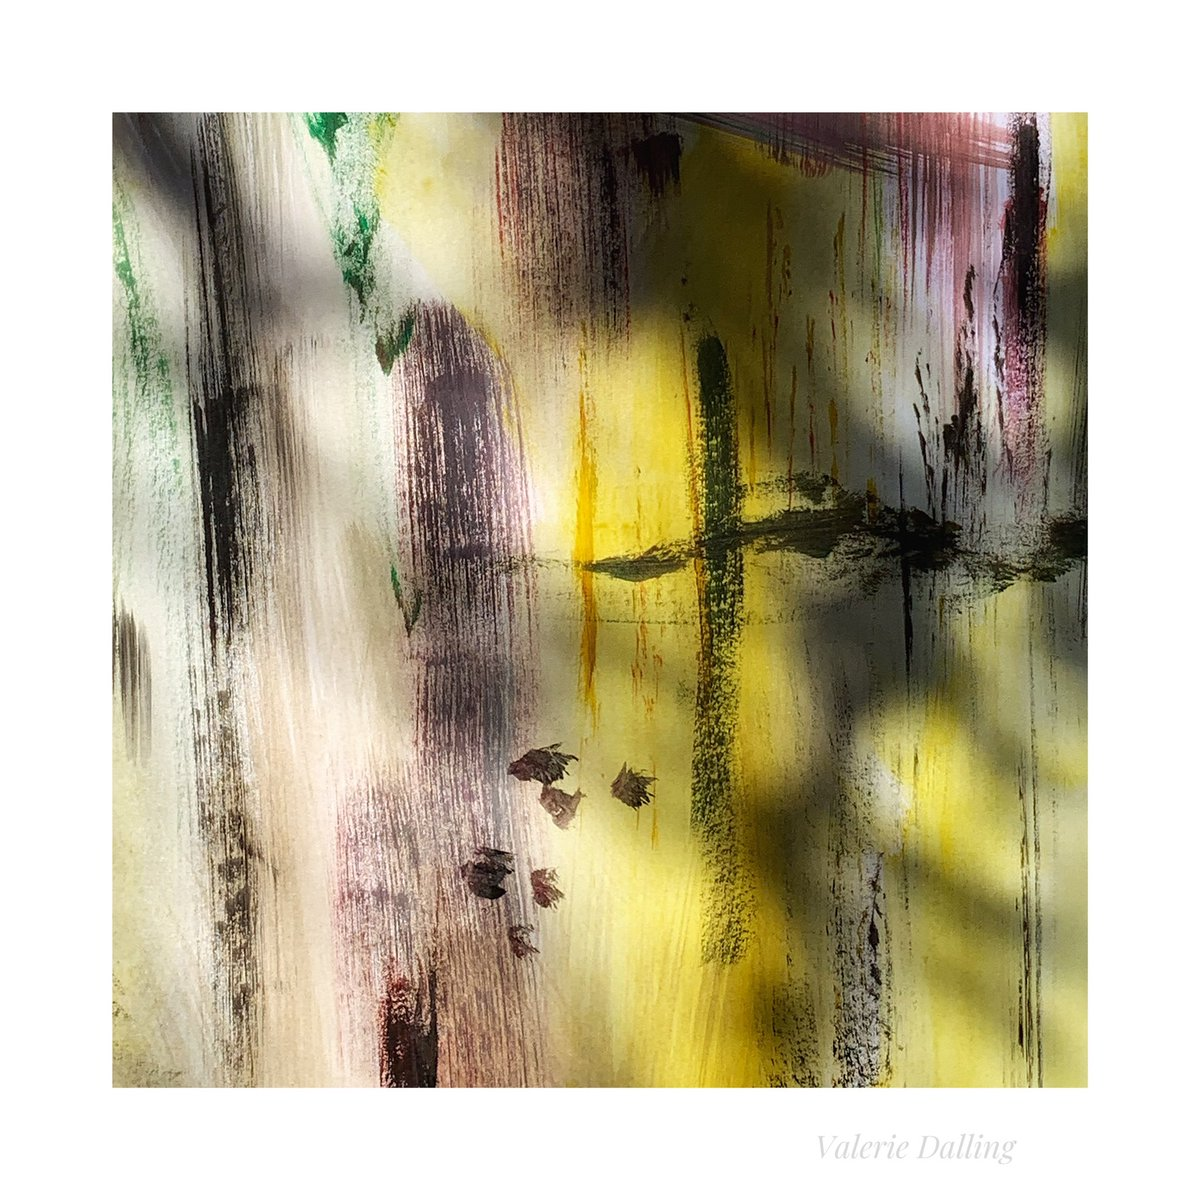 I believe I have a new project to explore, a natural progression for my art as I pursue the idea of the real and imagined through painting and photography...this all came about from painting in my garden yesterday. A second abstract In the Shadows. :) #art #photography #project